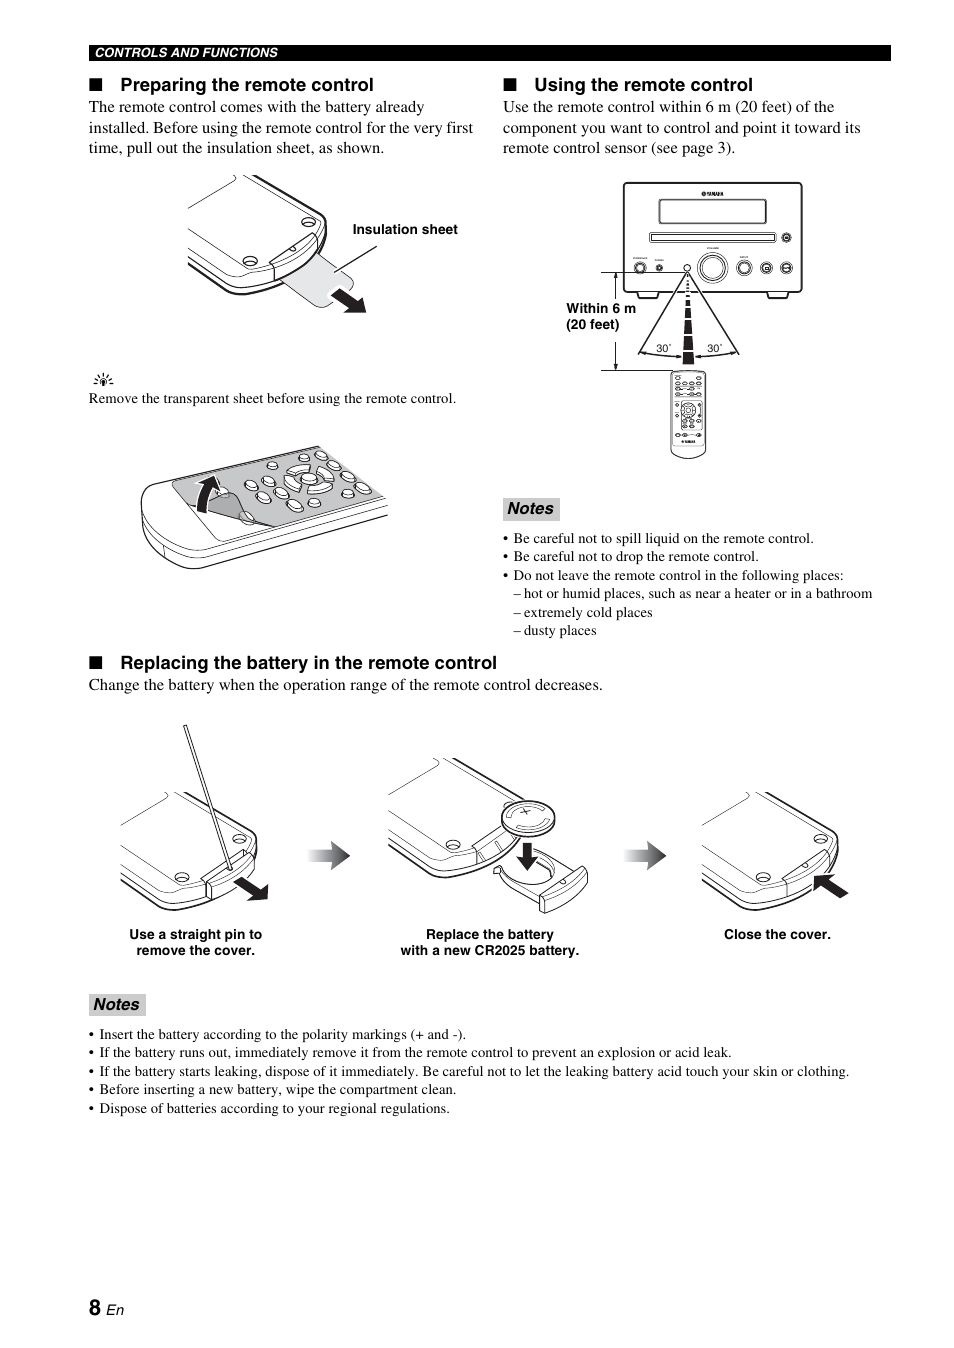 Yamaha 704 Remote Control Owners Manual